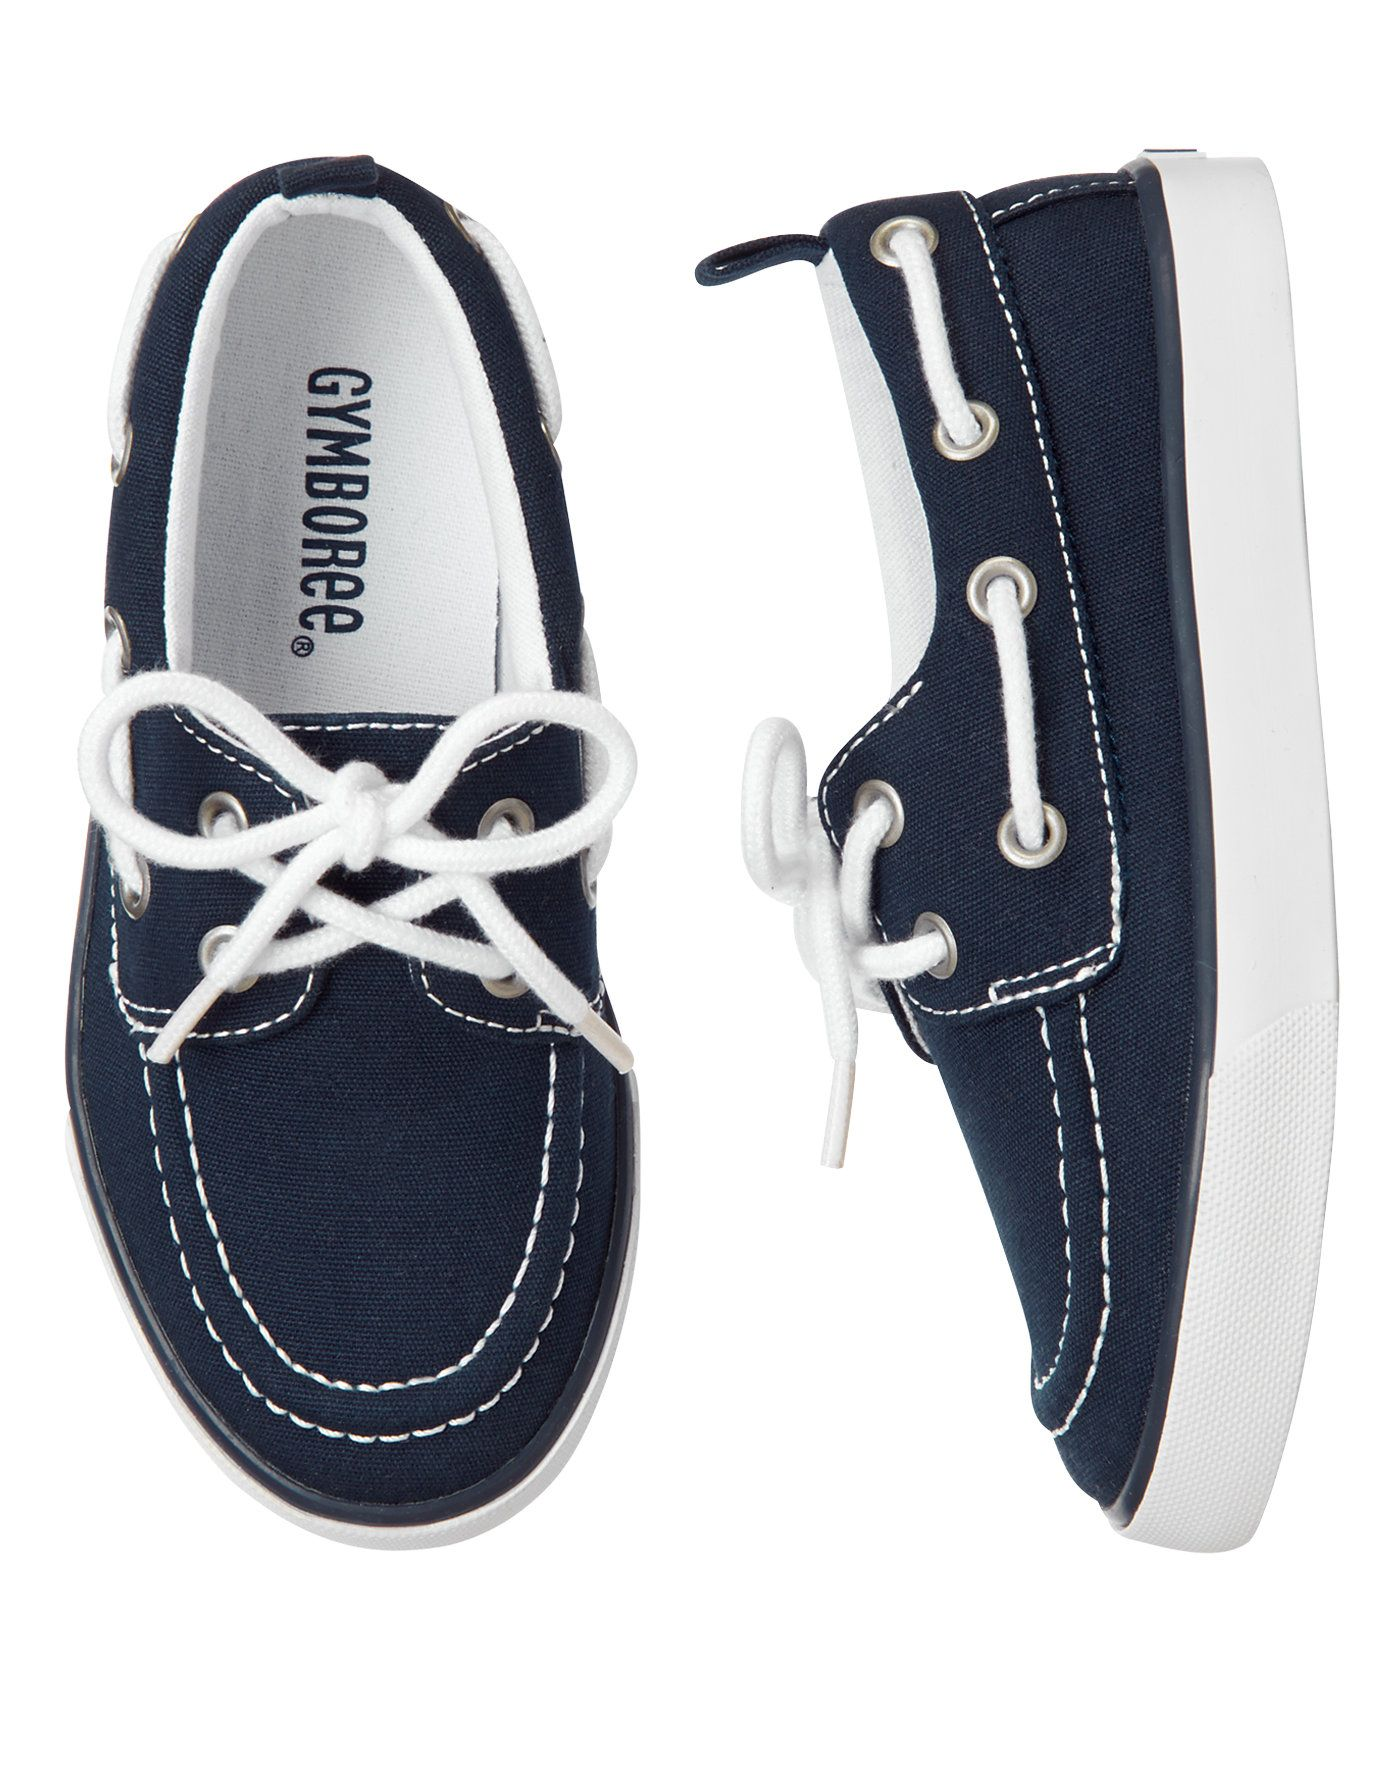 Canvas Boat Shoes at Gymboree | Boys boat shoes, White boat